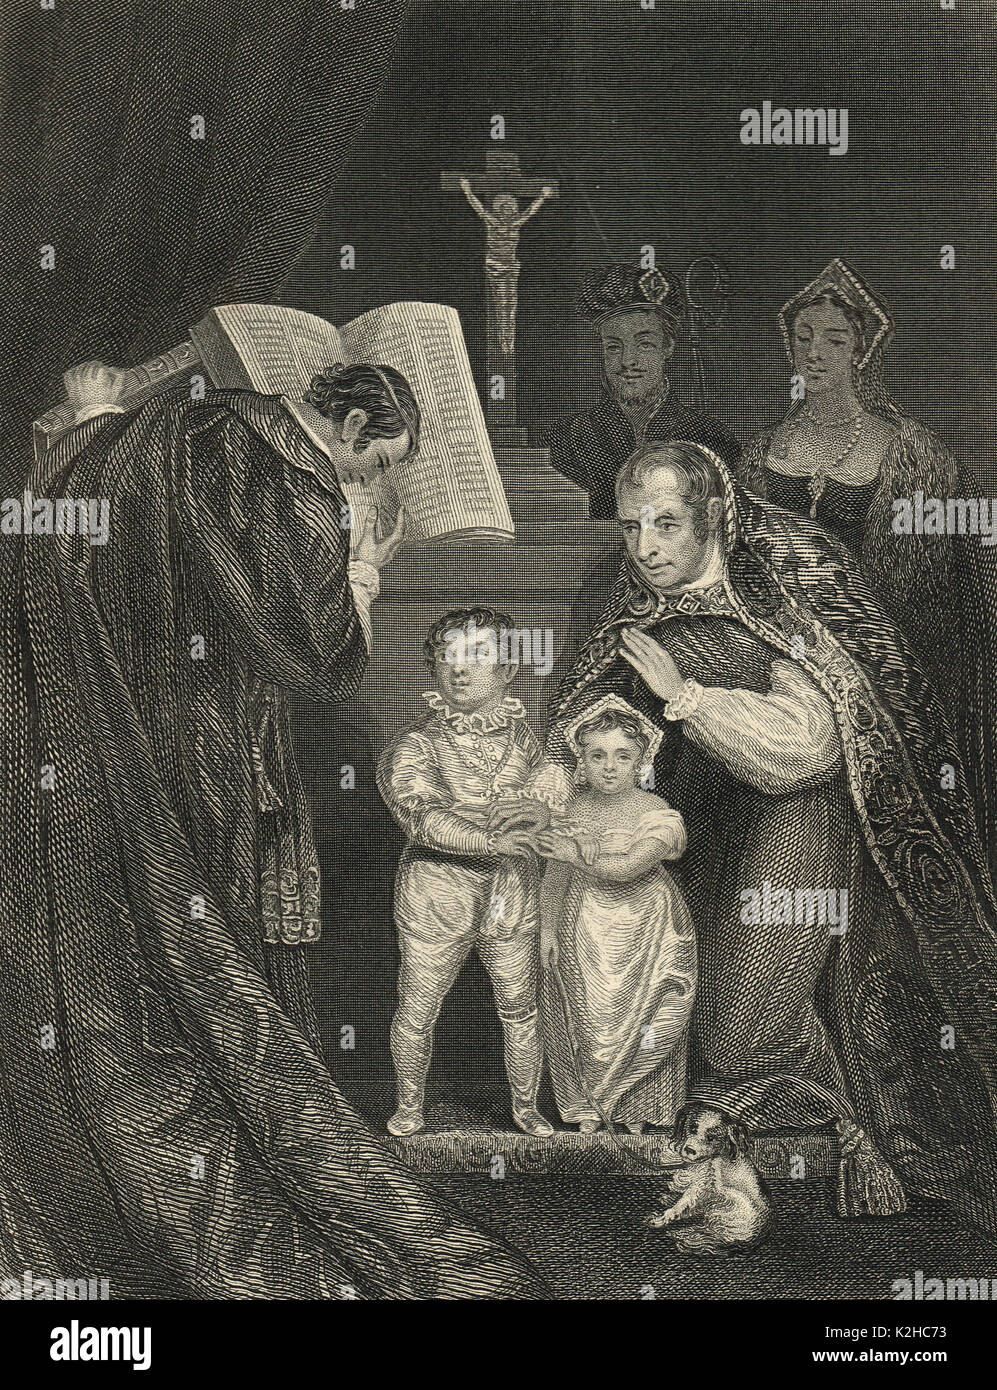 Marriage of the 4 year old Richard duke of York to 5 year-old bride, Anne de Mowbray, 8th Countess of Norfolk, 15 January 1478 in St Stephen's Chapel, Westminster - Stock Image